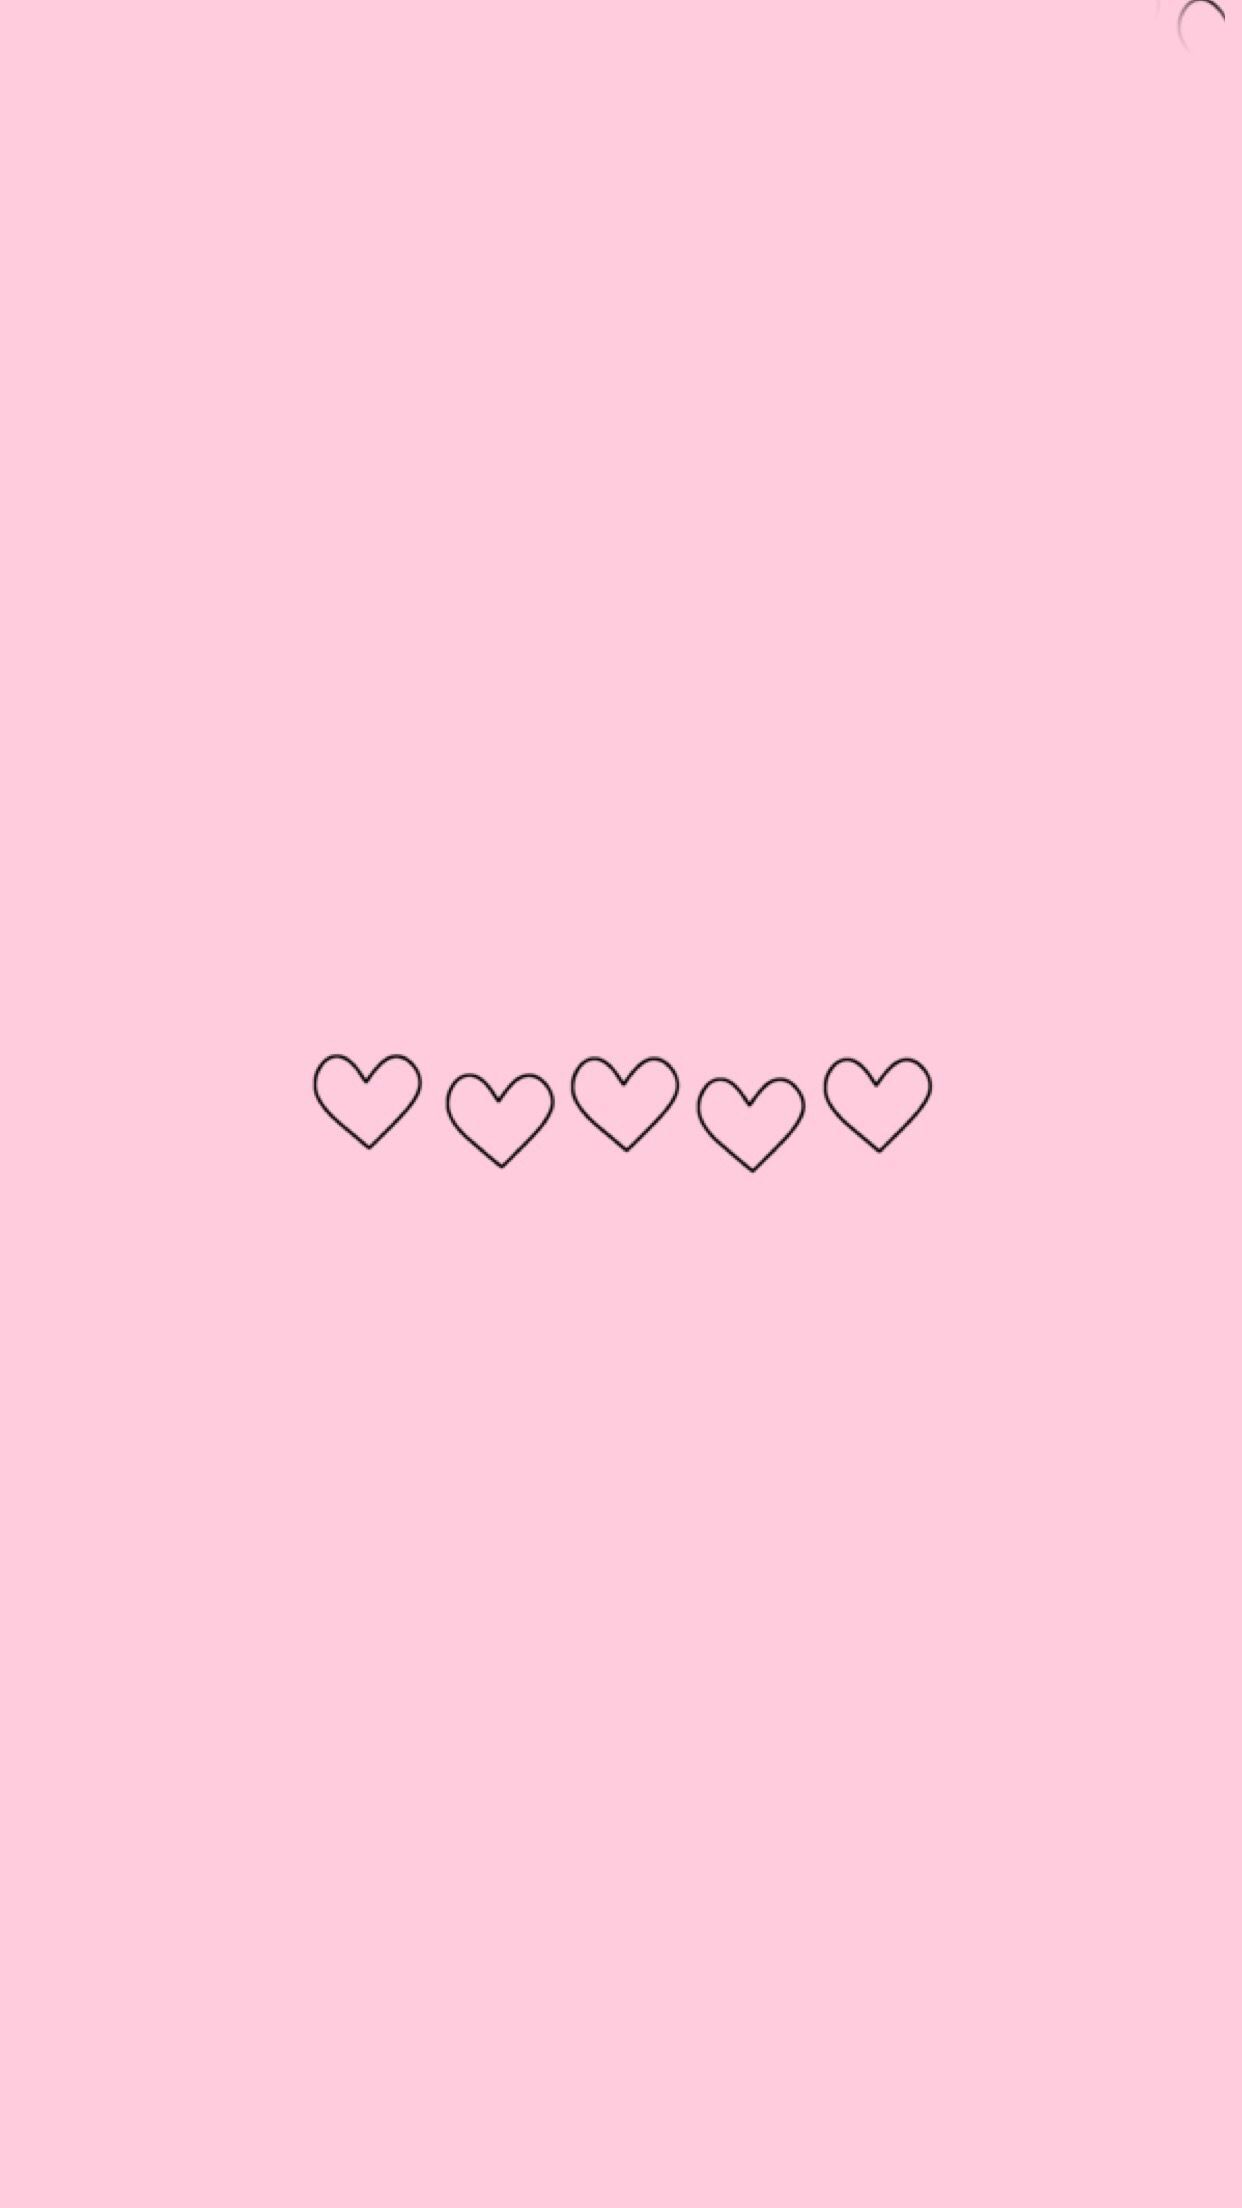 100+ Wallpaper Aesthetic Pink for Mobile